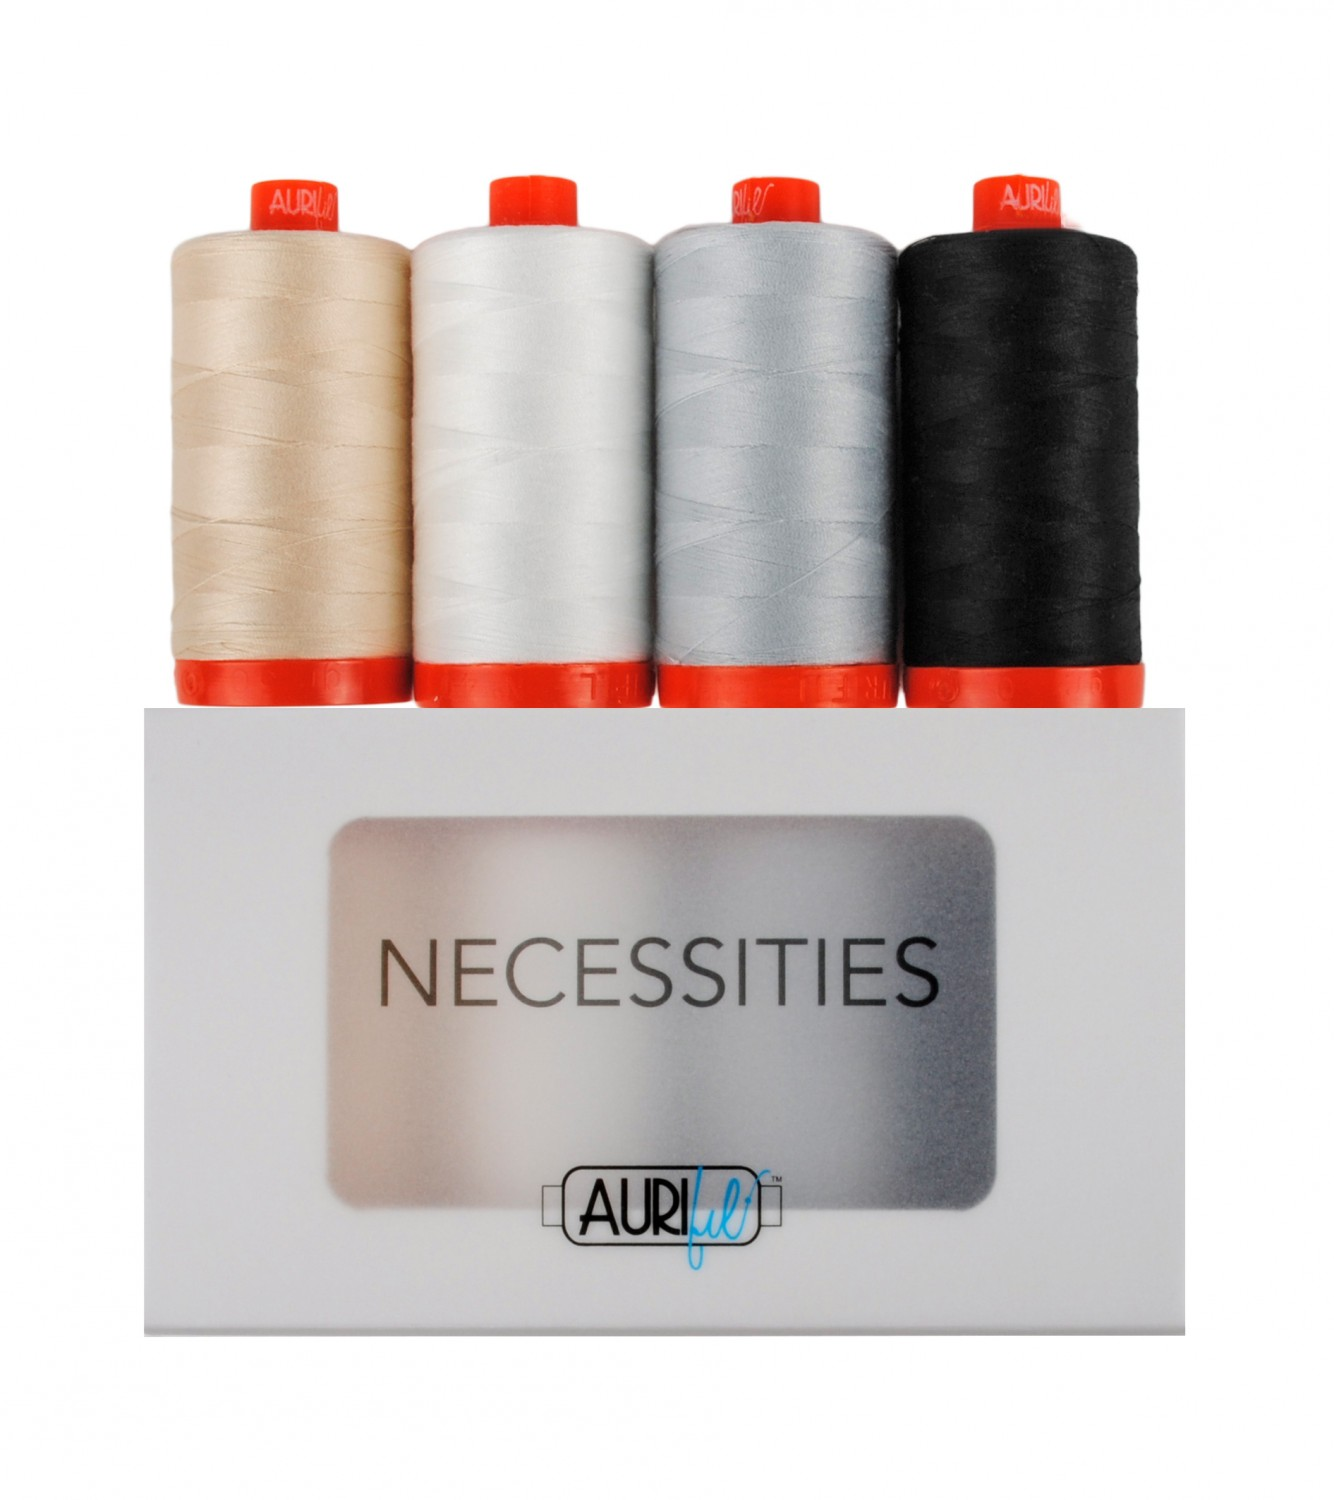 Aurifil Necessities House Collection